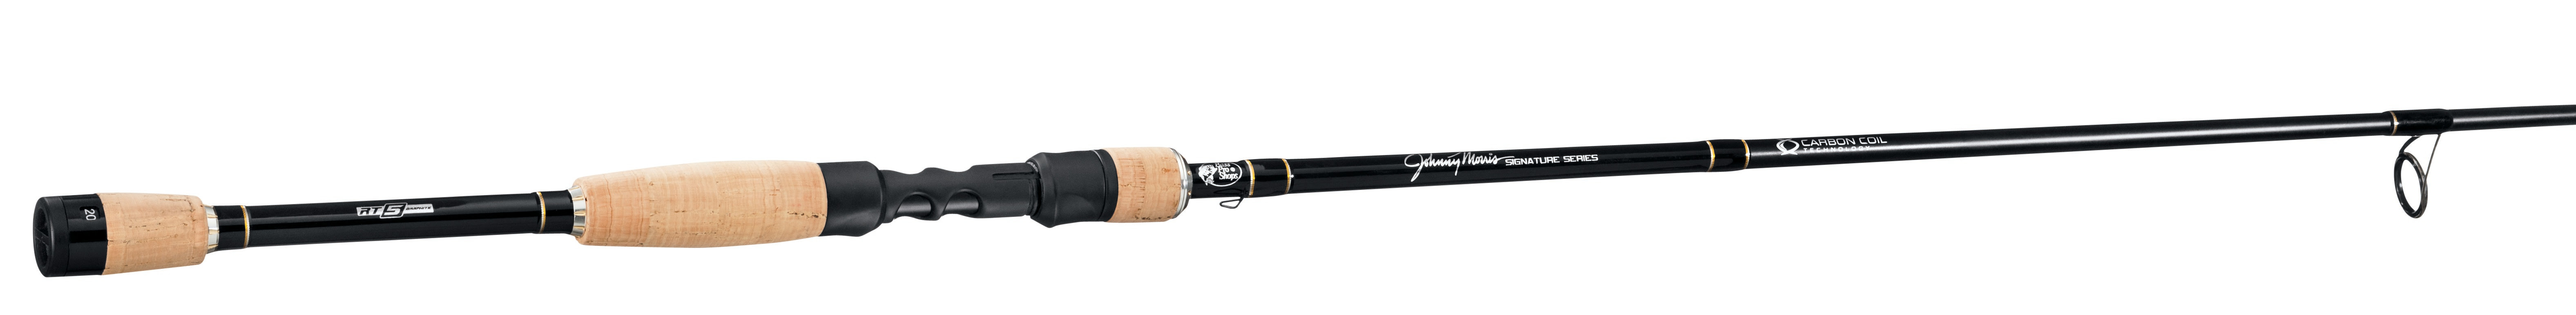 f2d75a7df8a Bass Pro Shops Johnny Morris Signature Series Fishing Rods put the  advantage in your hand - AverageOutdoorsman